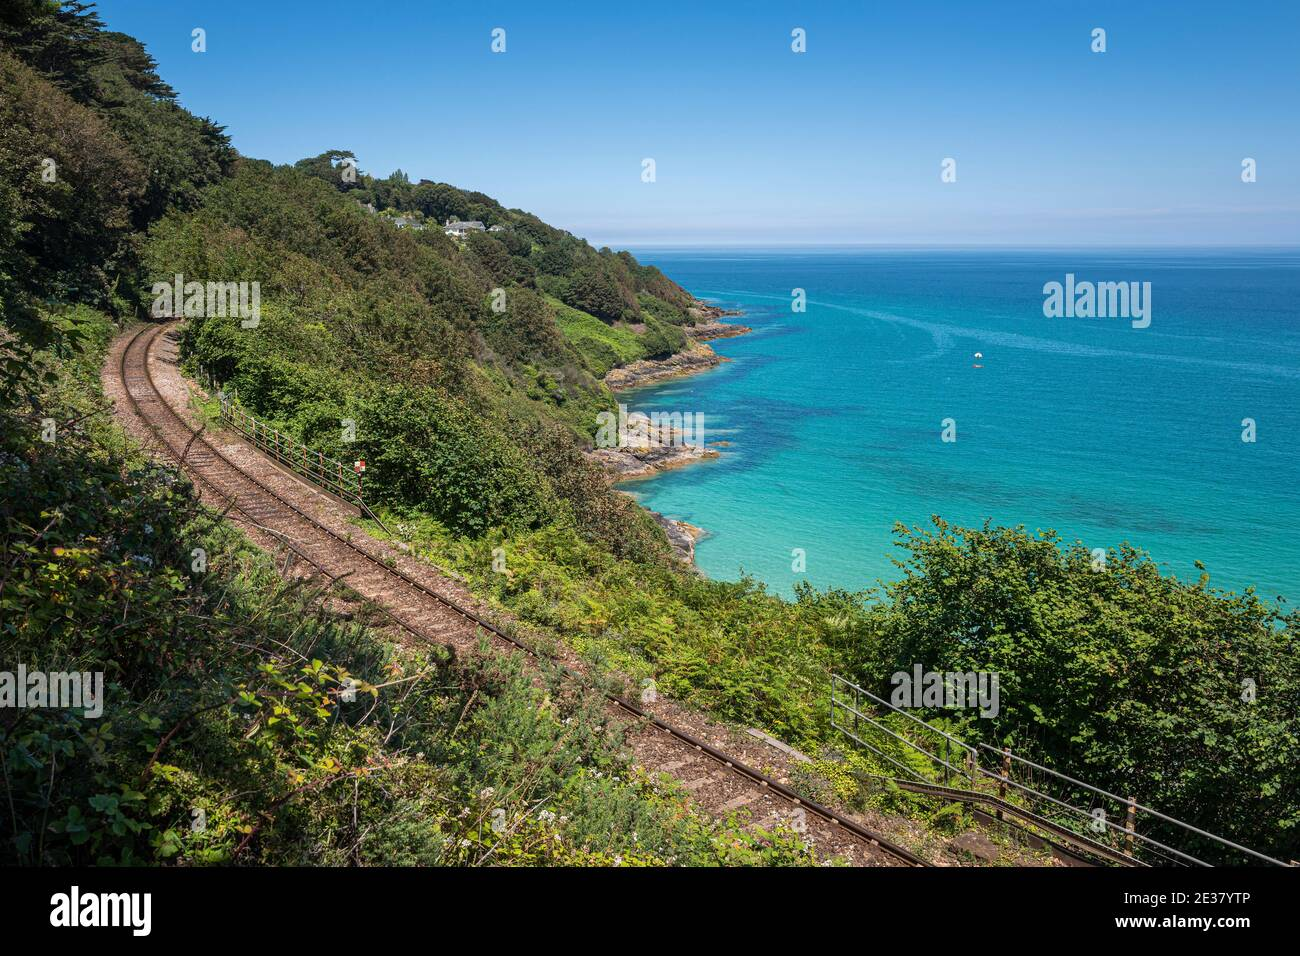 Carbis Bay, Cornwall, United Kingdom is to host the G7 summit of world leaders in June 2021. Stock Photo